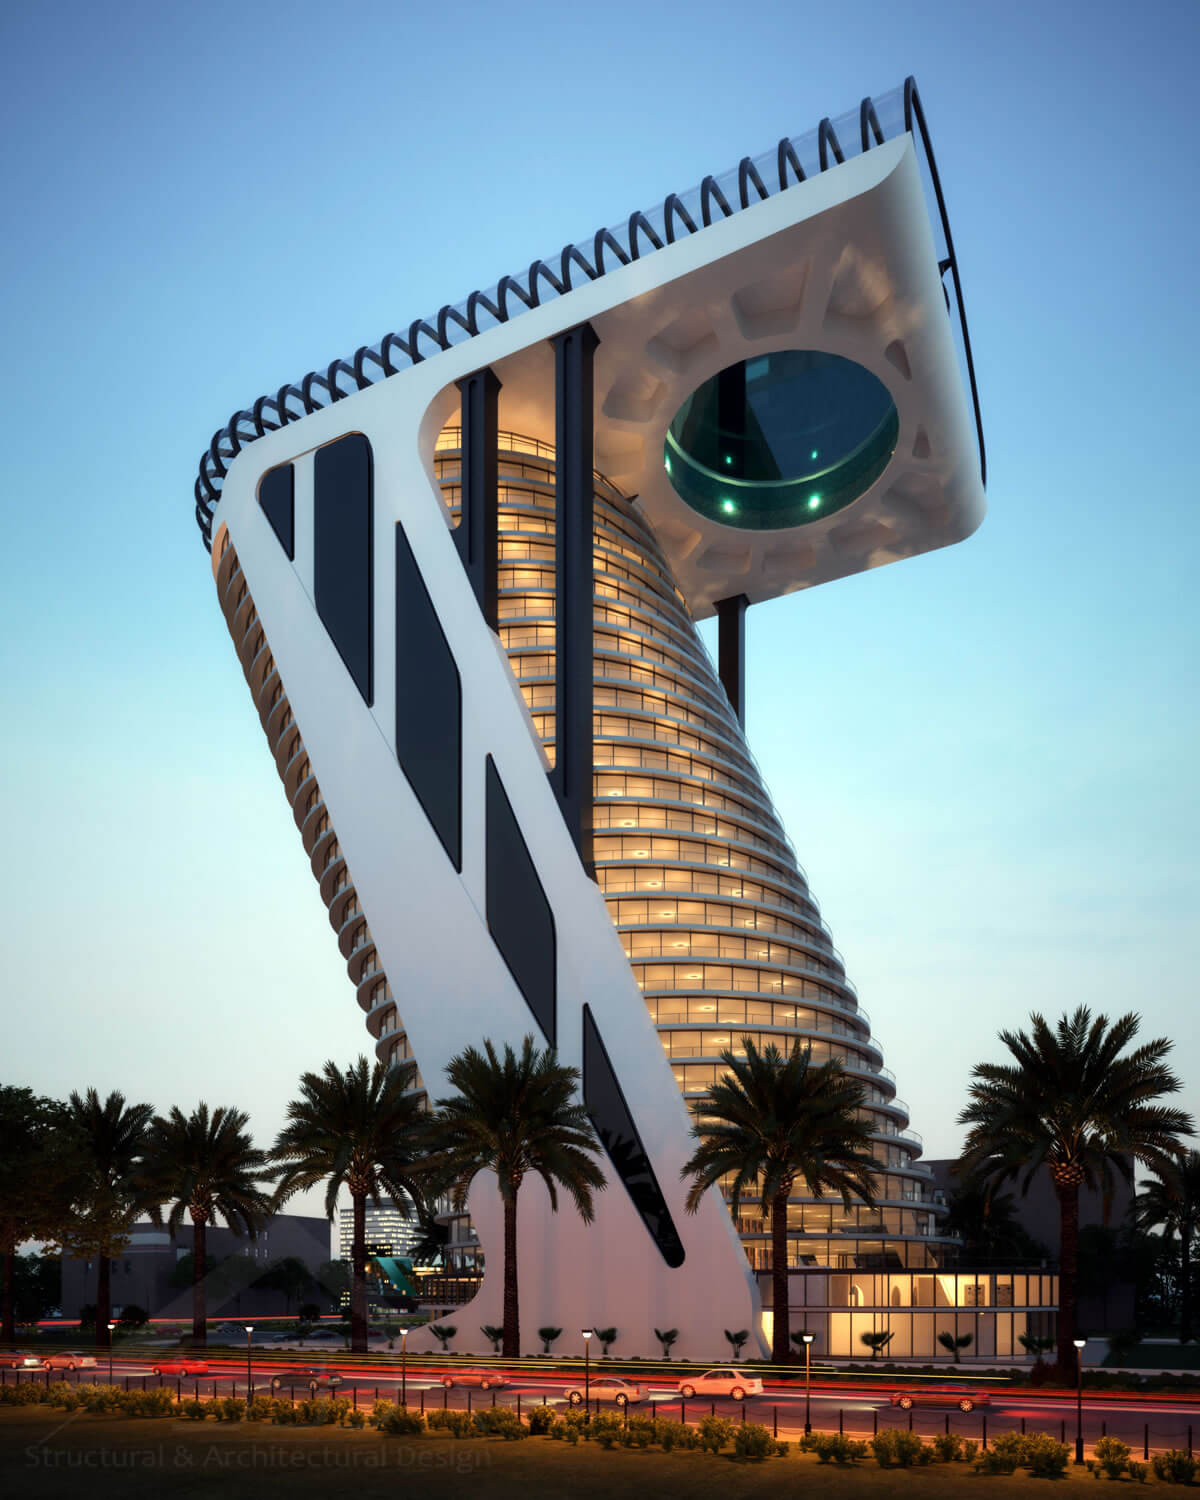 Conceptual Design of the Z Tower in Dubai - tower design